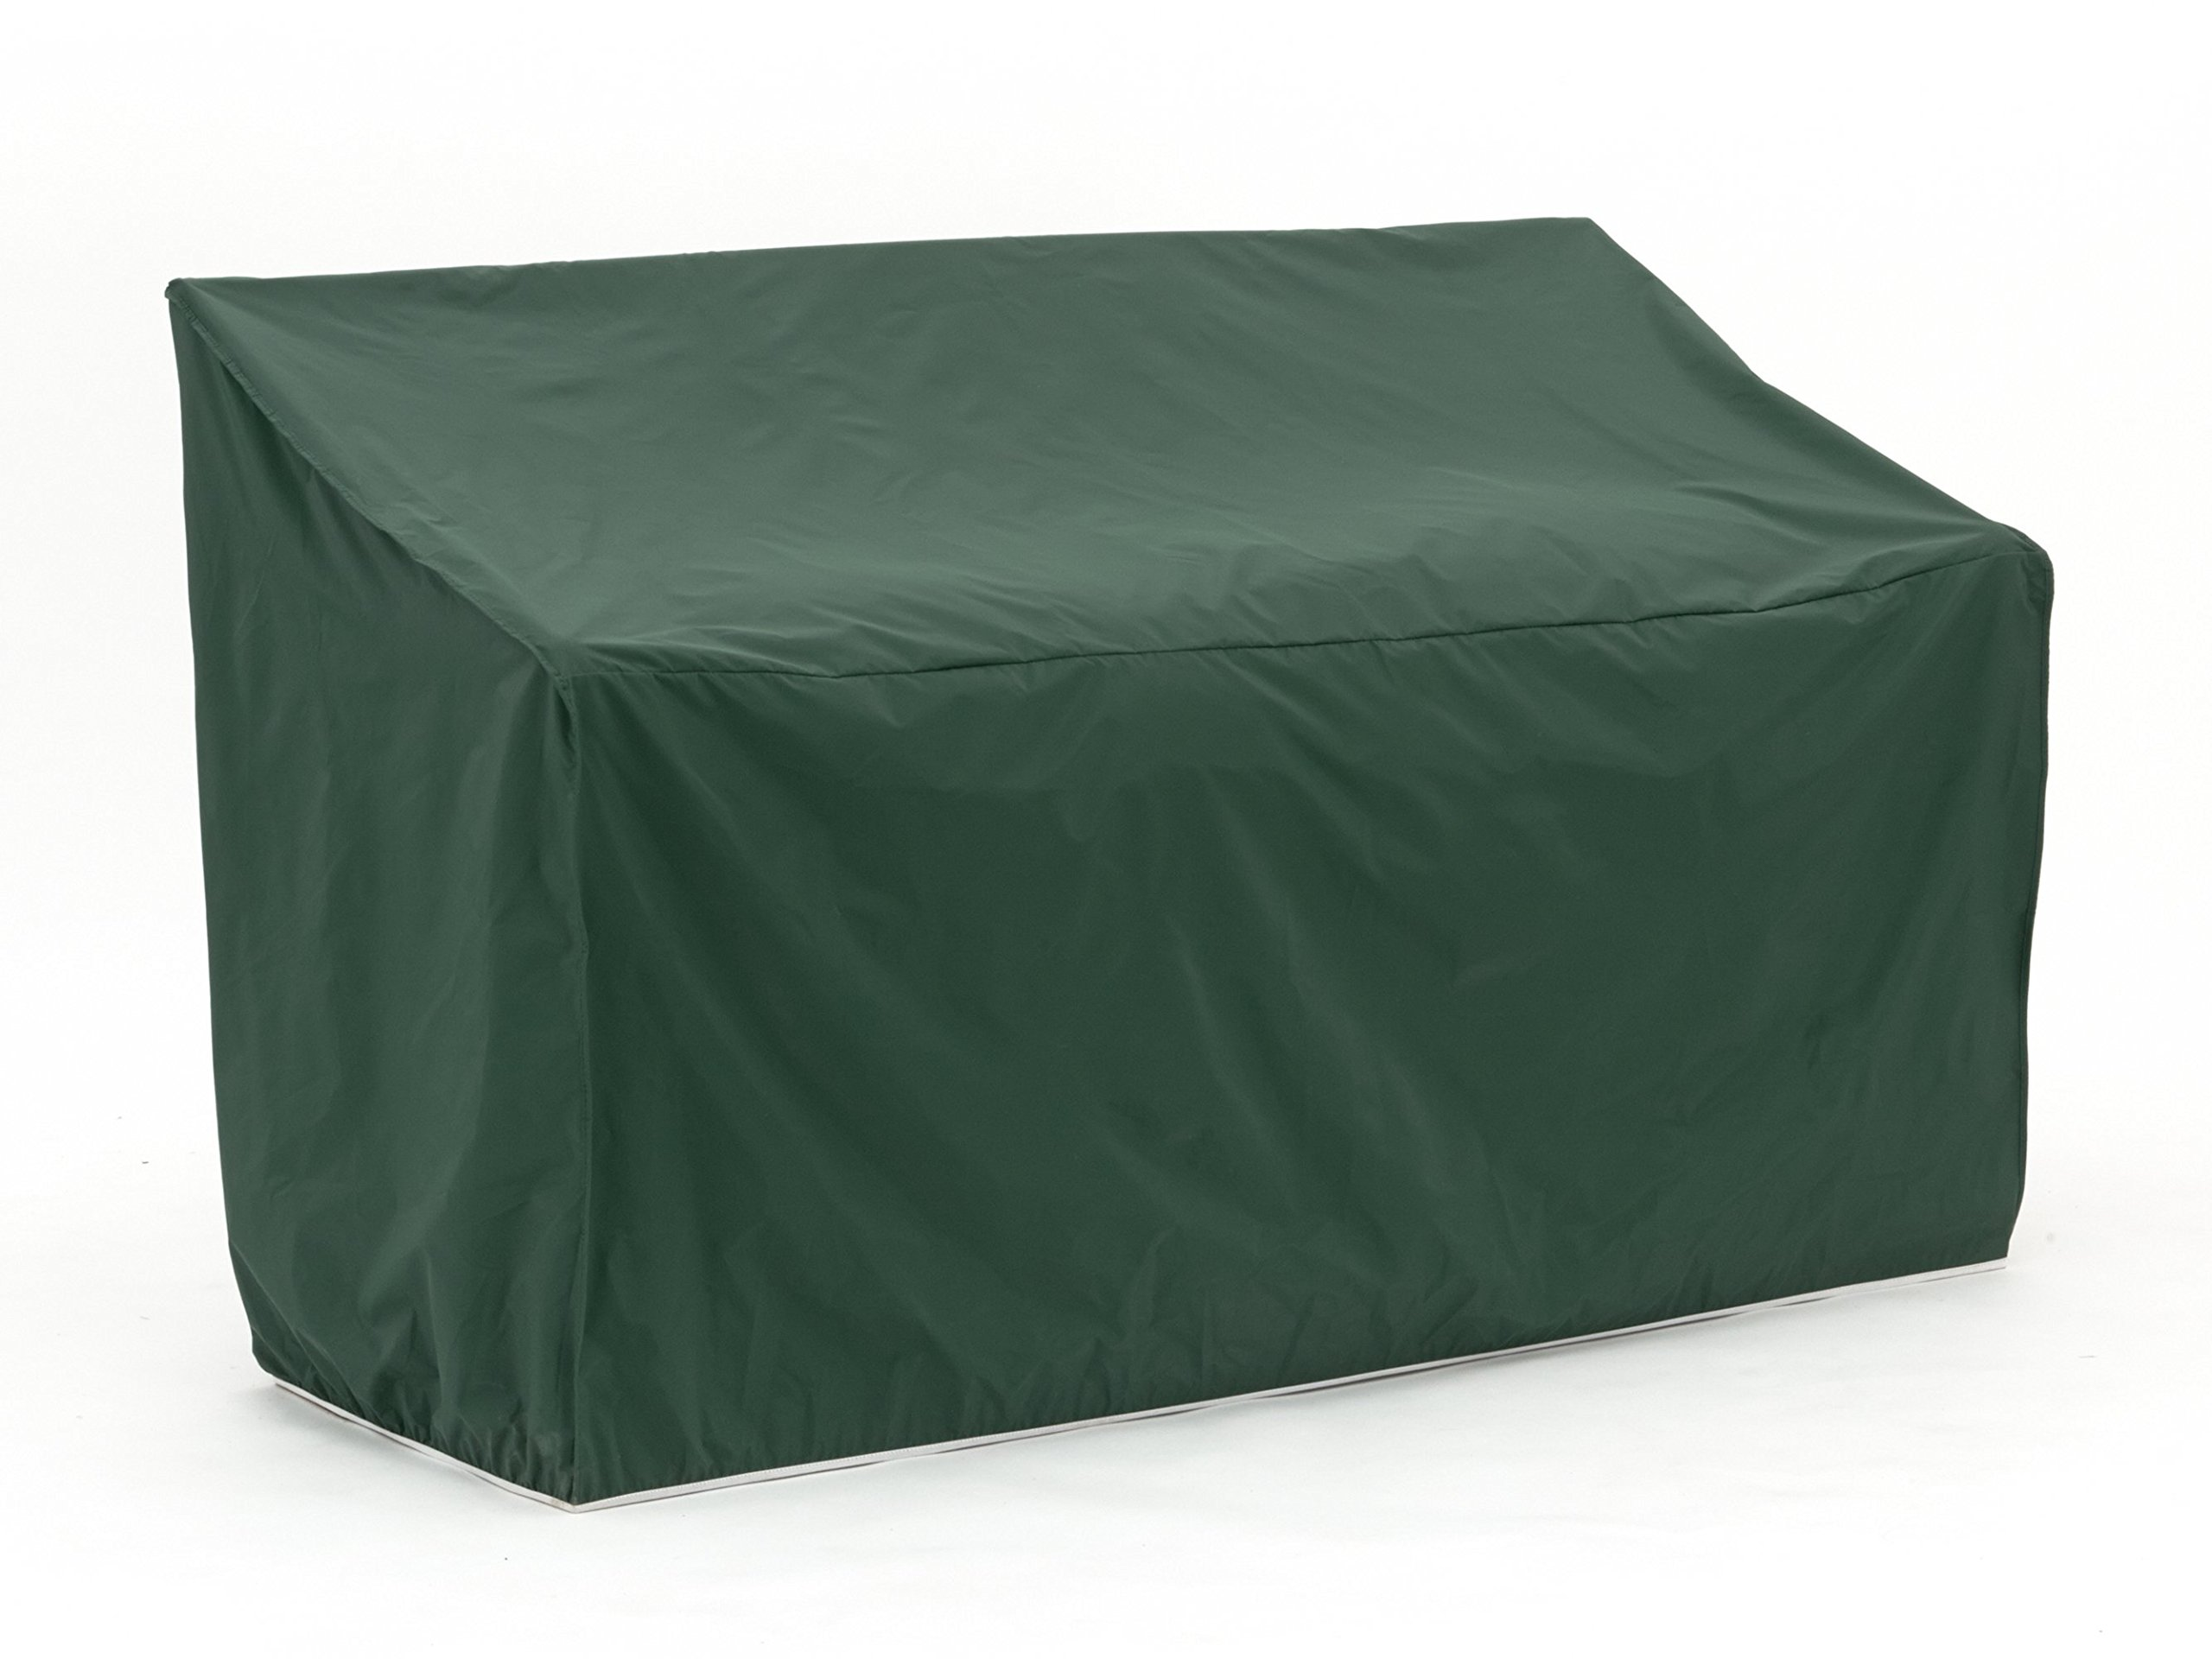 Covermates - Outdoor Patio Loveseat Cover - 48W x 26D x 34H - Classic Collection - 2 YR Warranty - Year Around Protection - Green